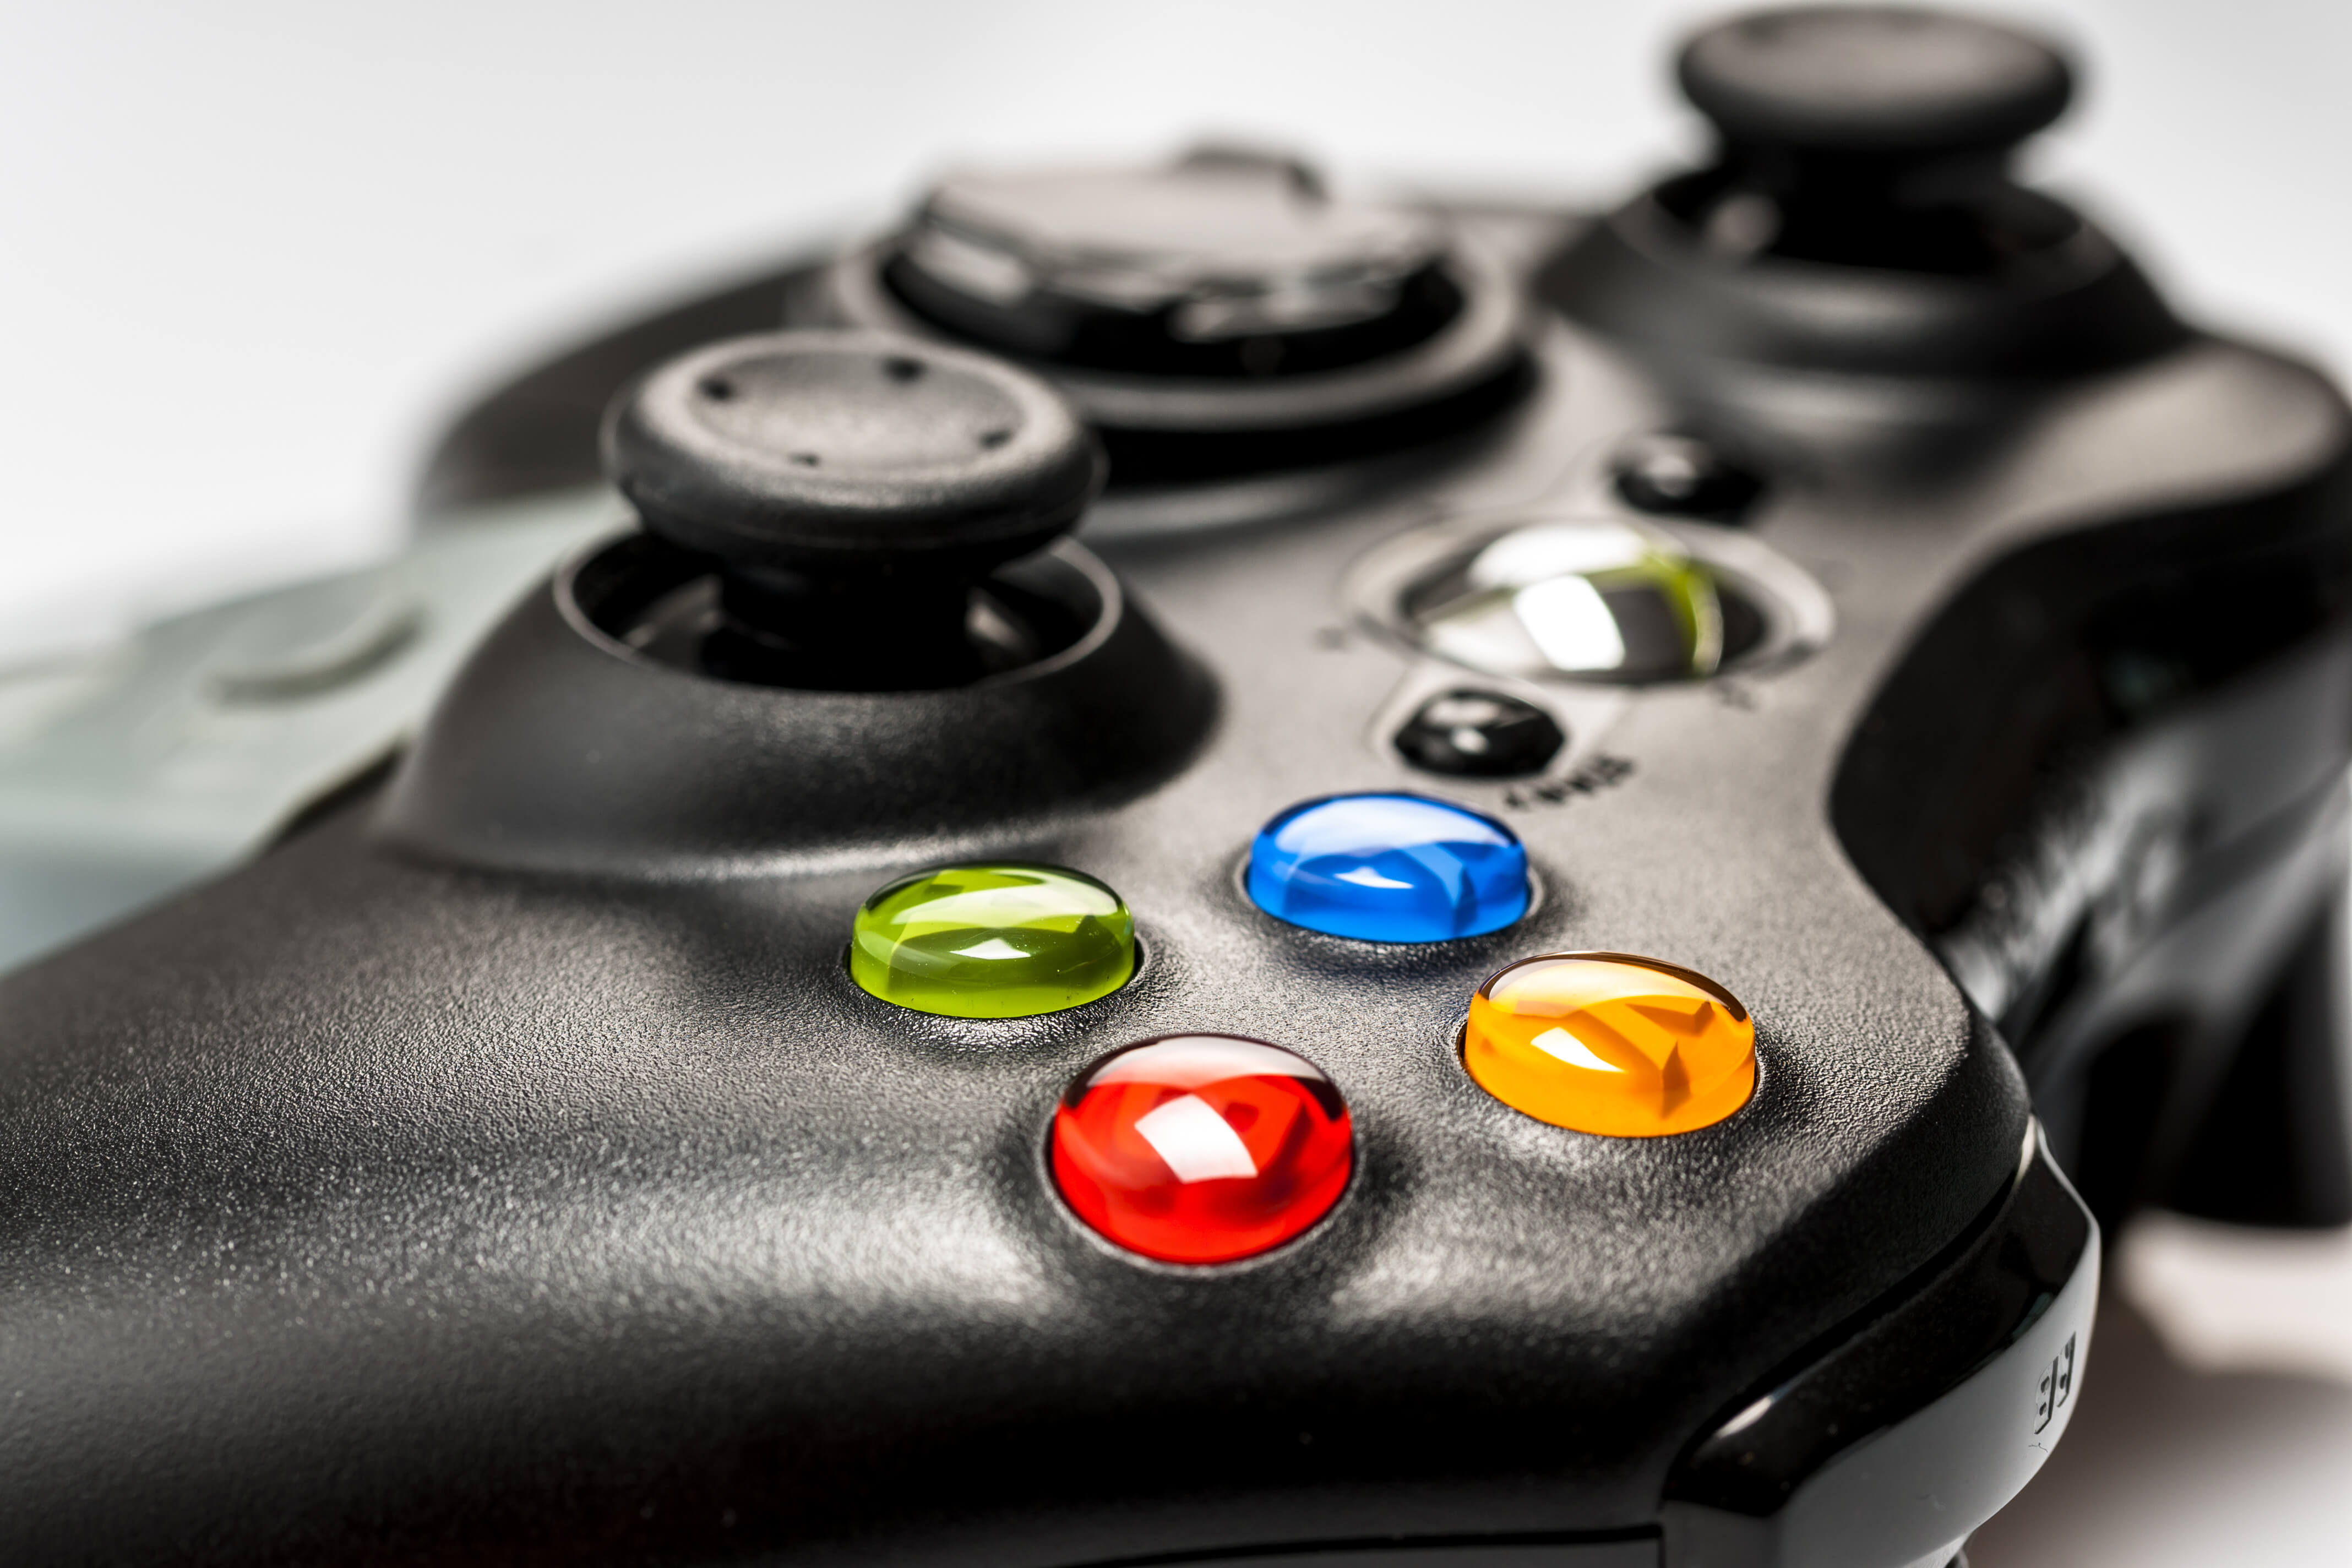 Xbox ONE Parental Controls Device Information from Protect Young Eyes